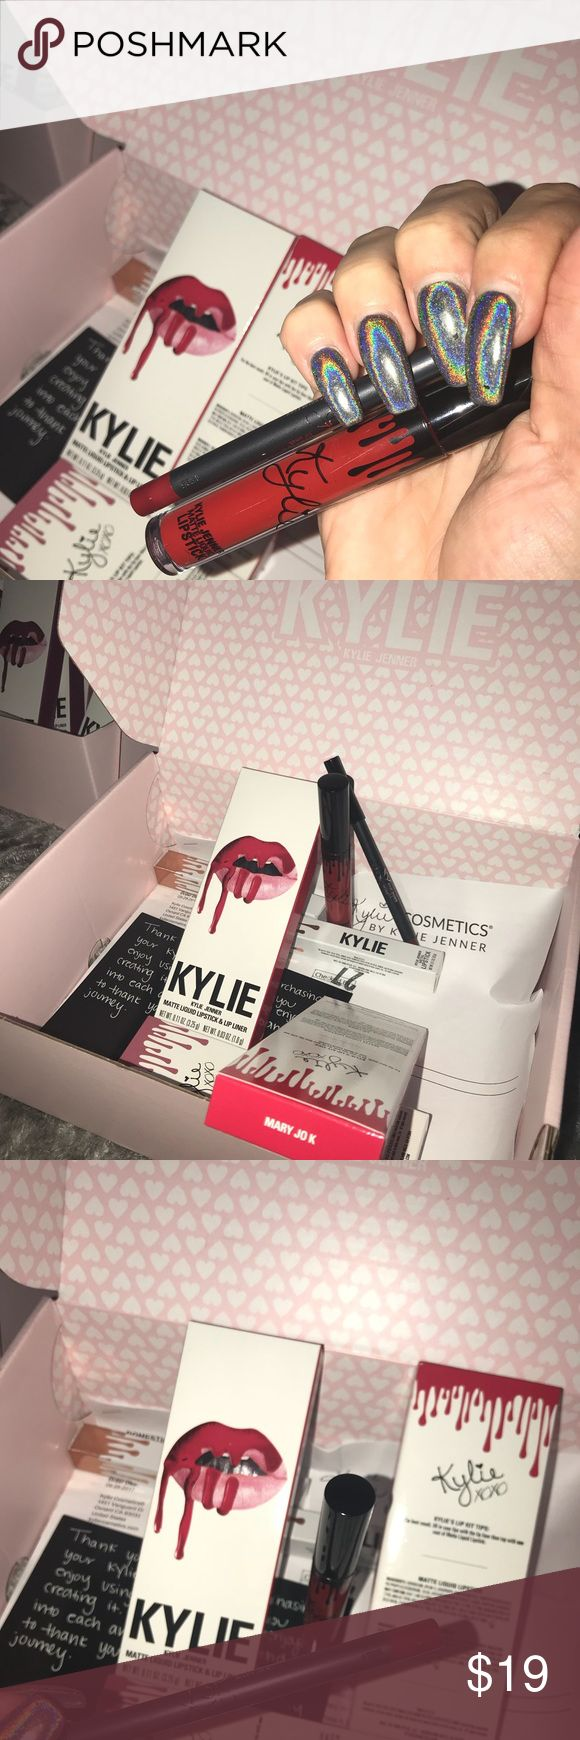 "Kylie Jenner ""MARY JO K"" Lip Kit Authentic and brand new in original packaging.                      Mary Jo K is a true blue red.  Each Lip Kit contains:   1 Matte Liquid Lipstick (0.11 fl oz./oz. liq / 3.25 ml) 1 Pencil Lip Liner (net wt./ poids net  .03 oz/ 1.0g) Kylie Cosmetics Makeup Lipstick"